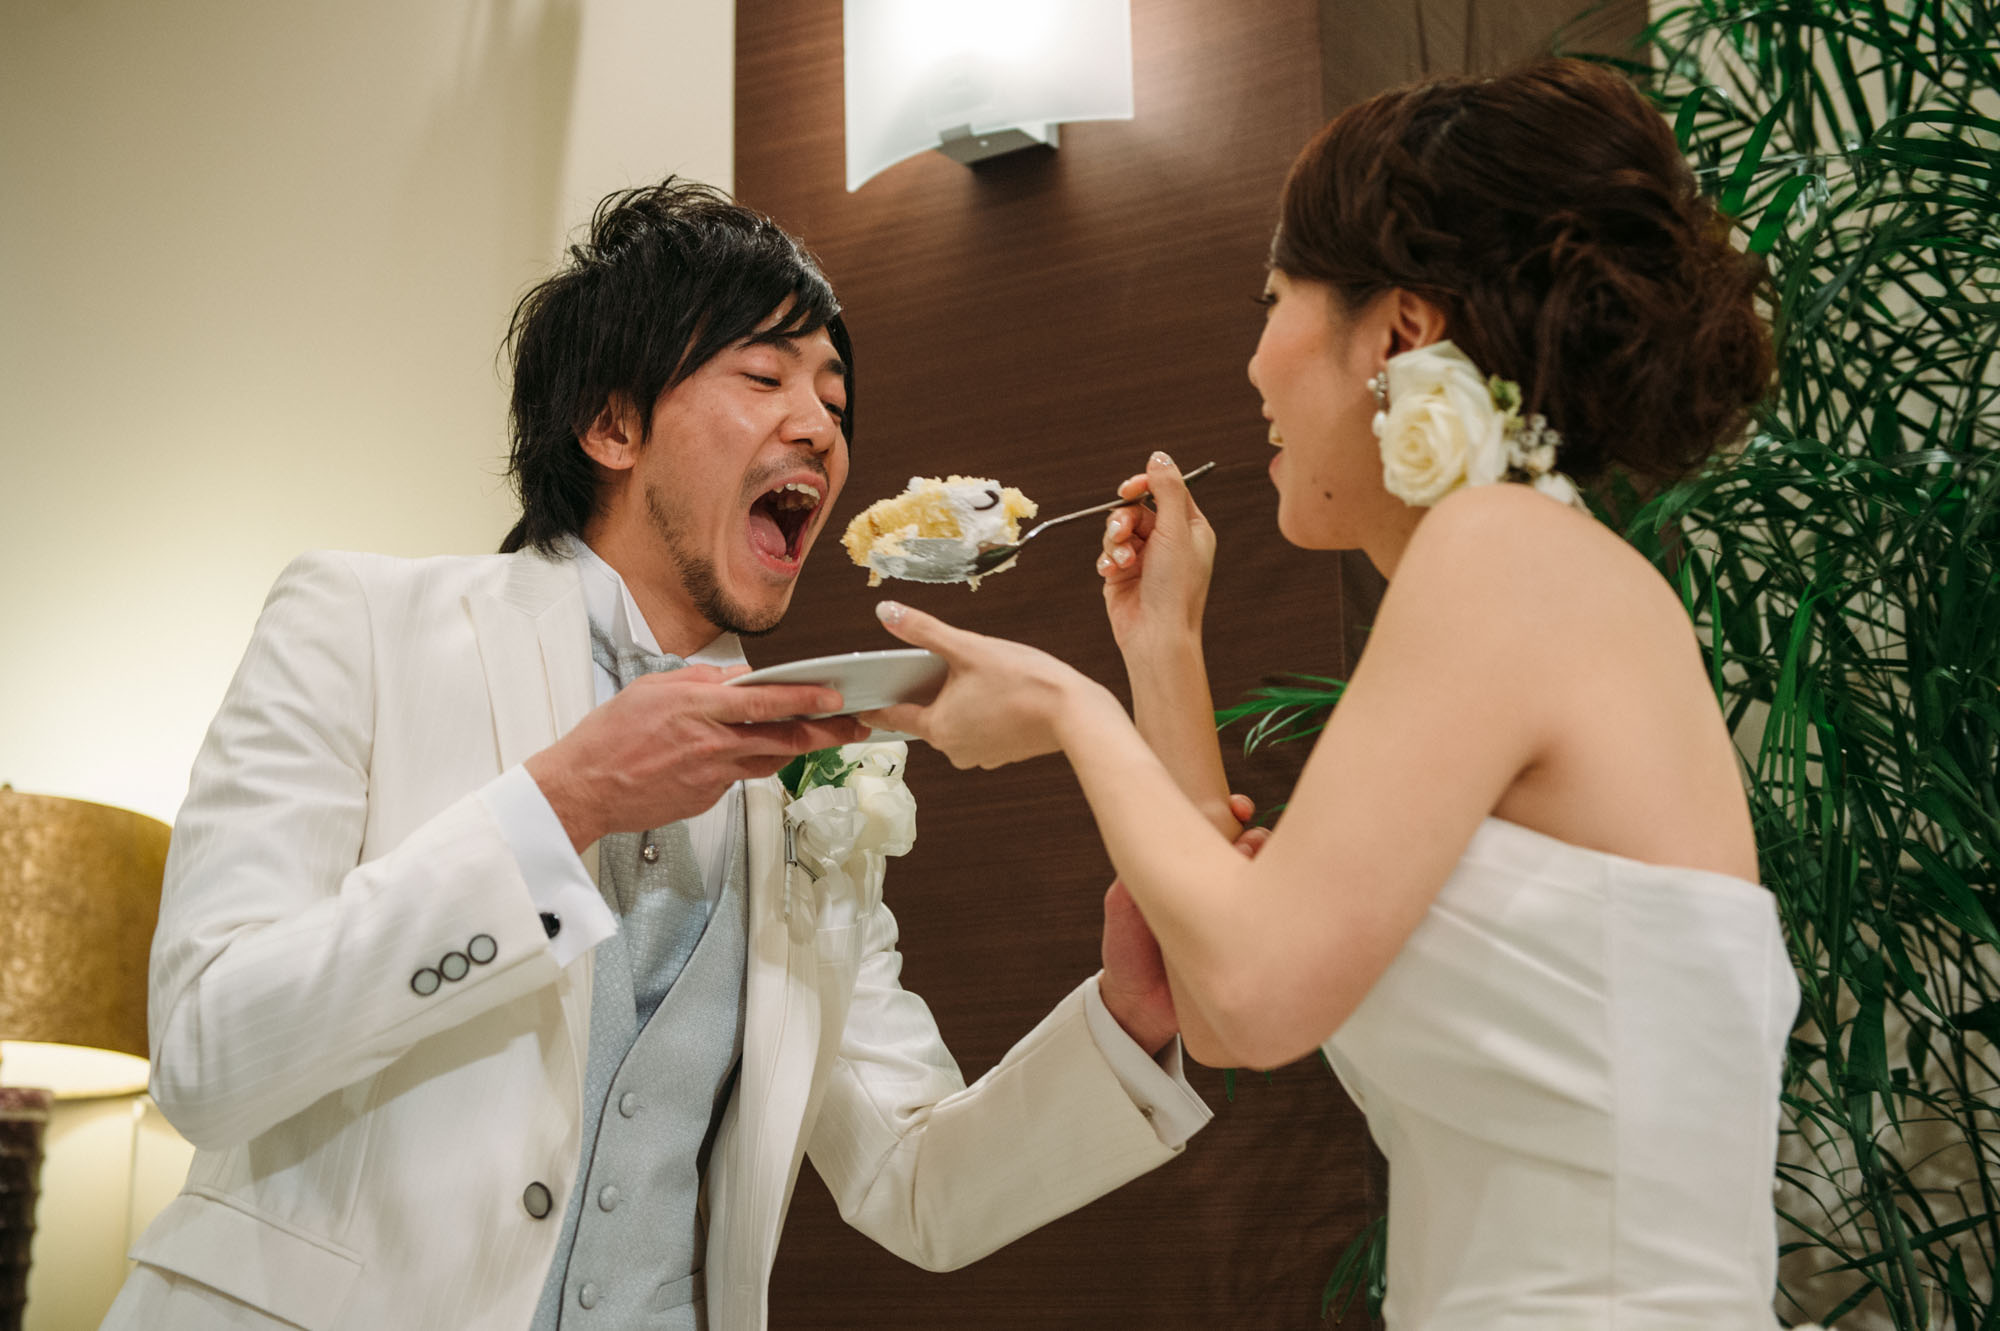 nagoya wedding86